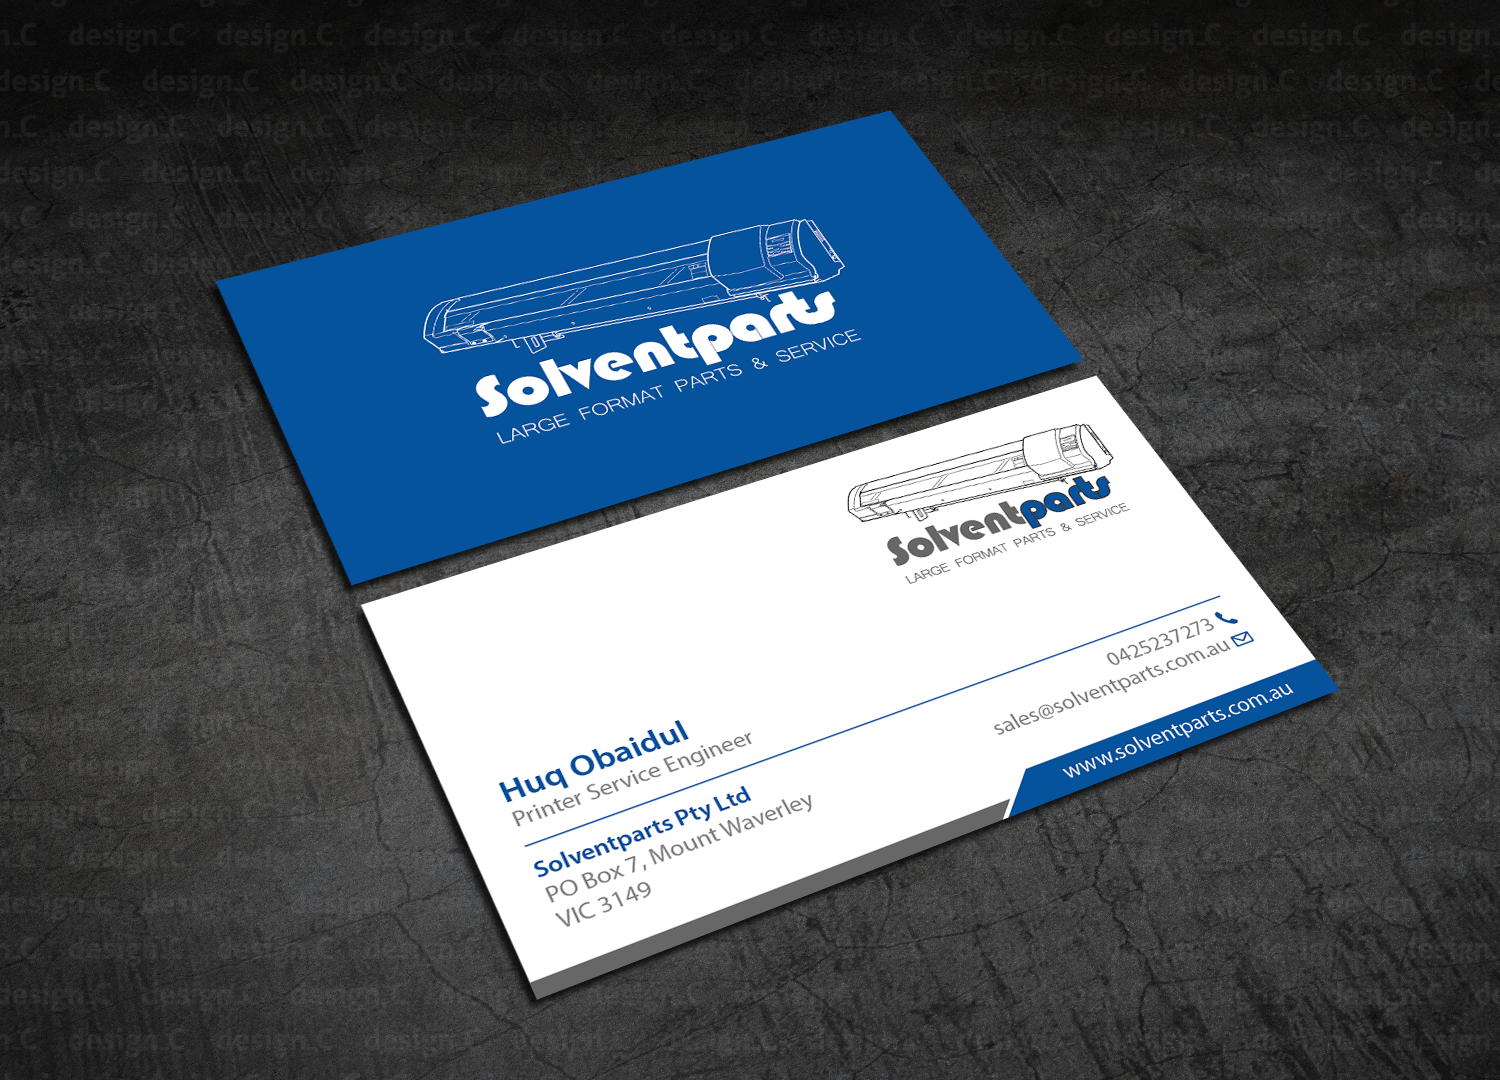 Personable conservative business business card design for business card design by designc for solventparts design 14726263 reheart Image collections